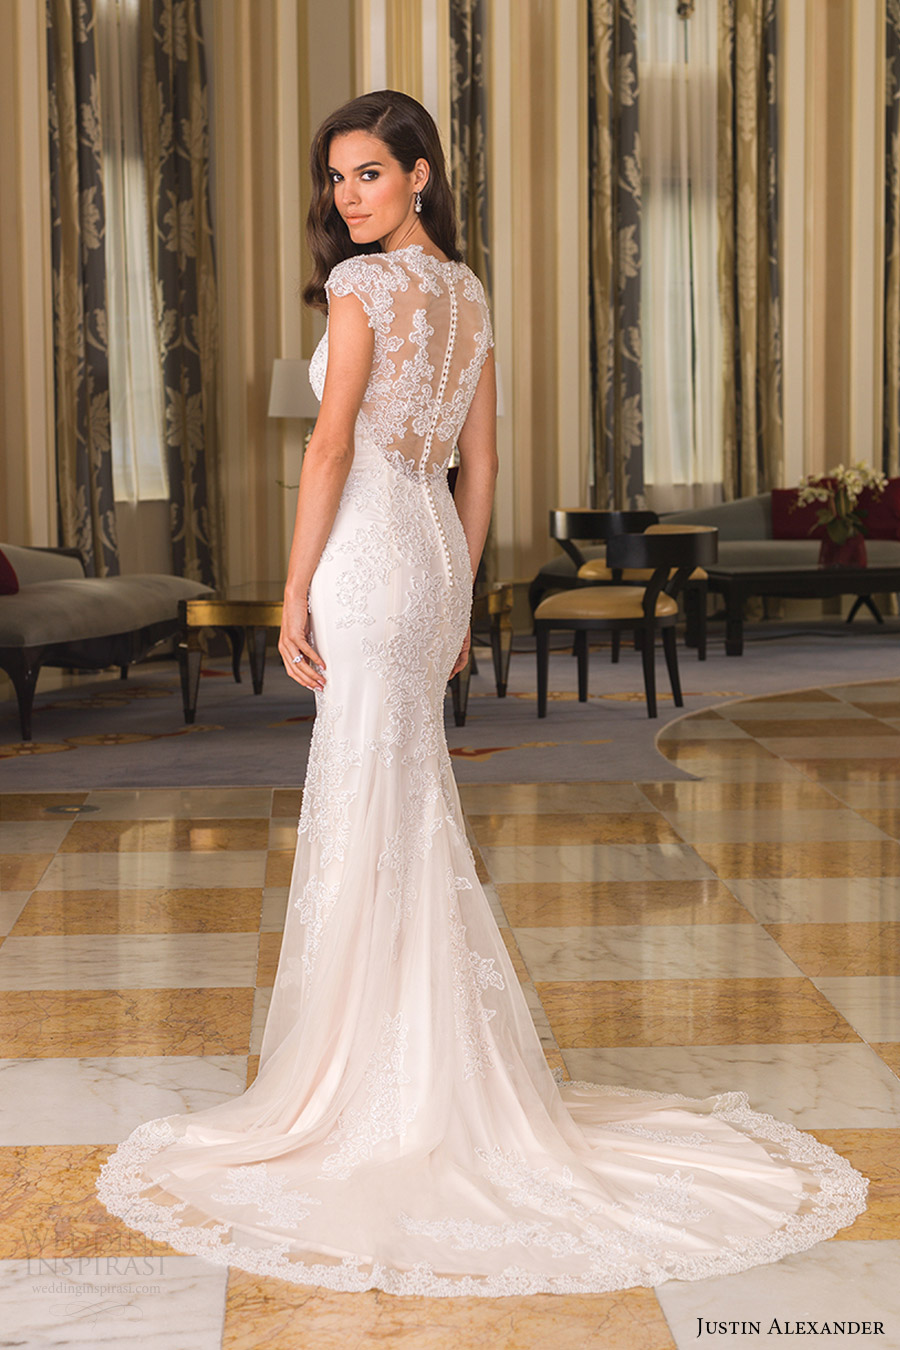 justin alexander bridal fall 2016 cap sleeves queen anne neckline sheath wedding dress (8860) bv sheer back train